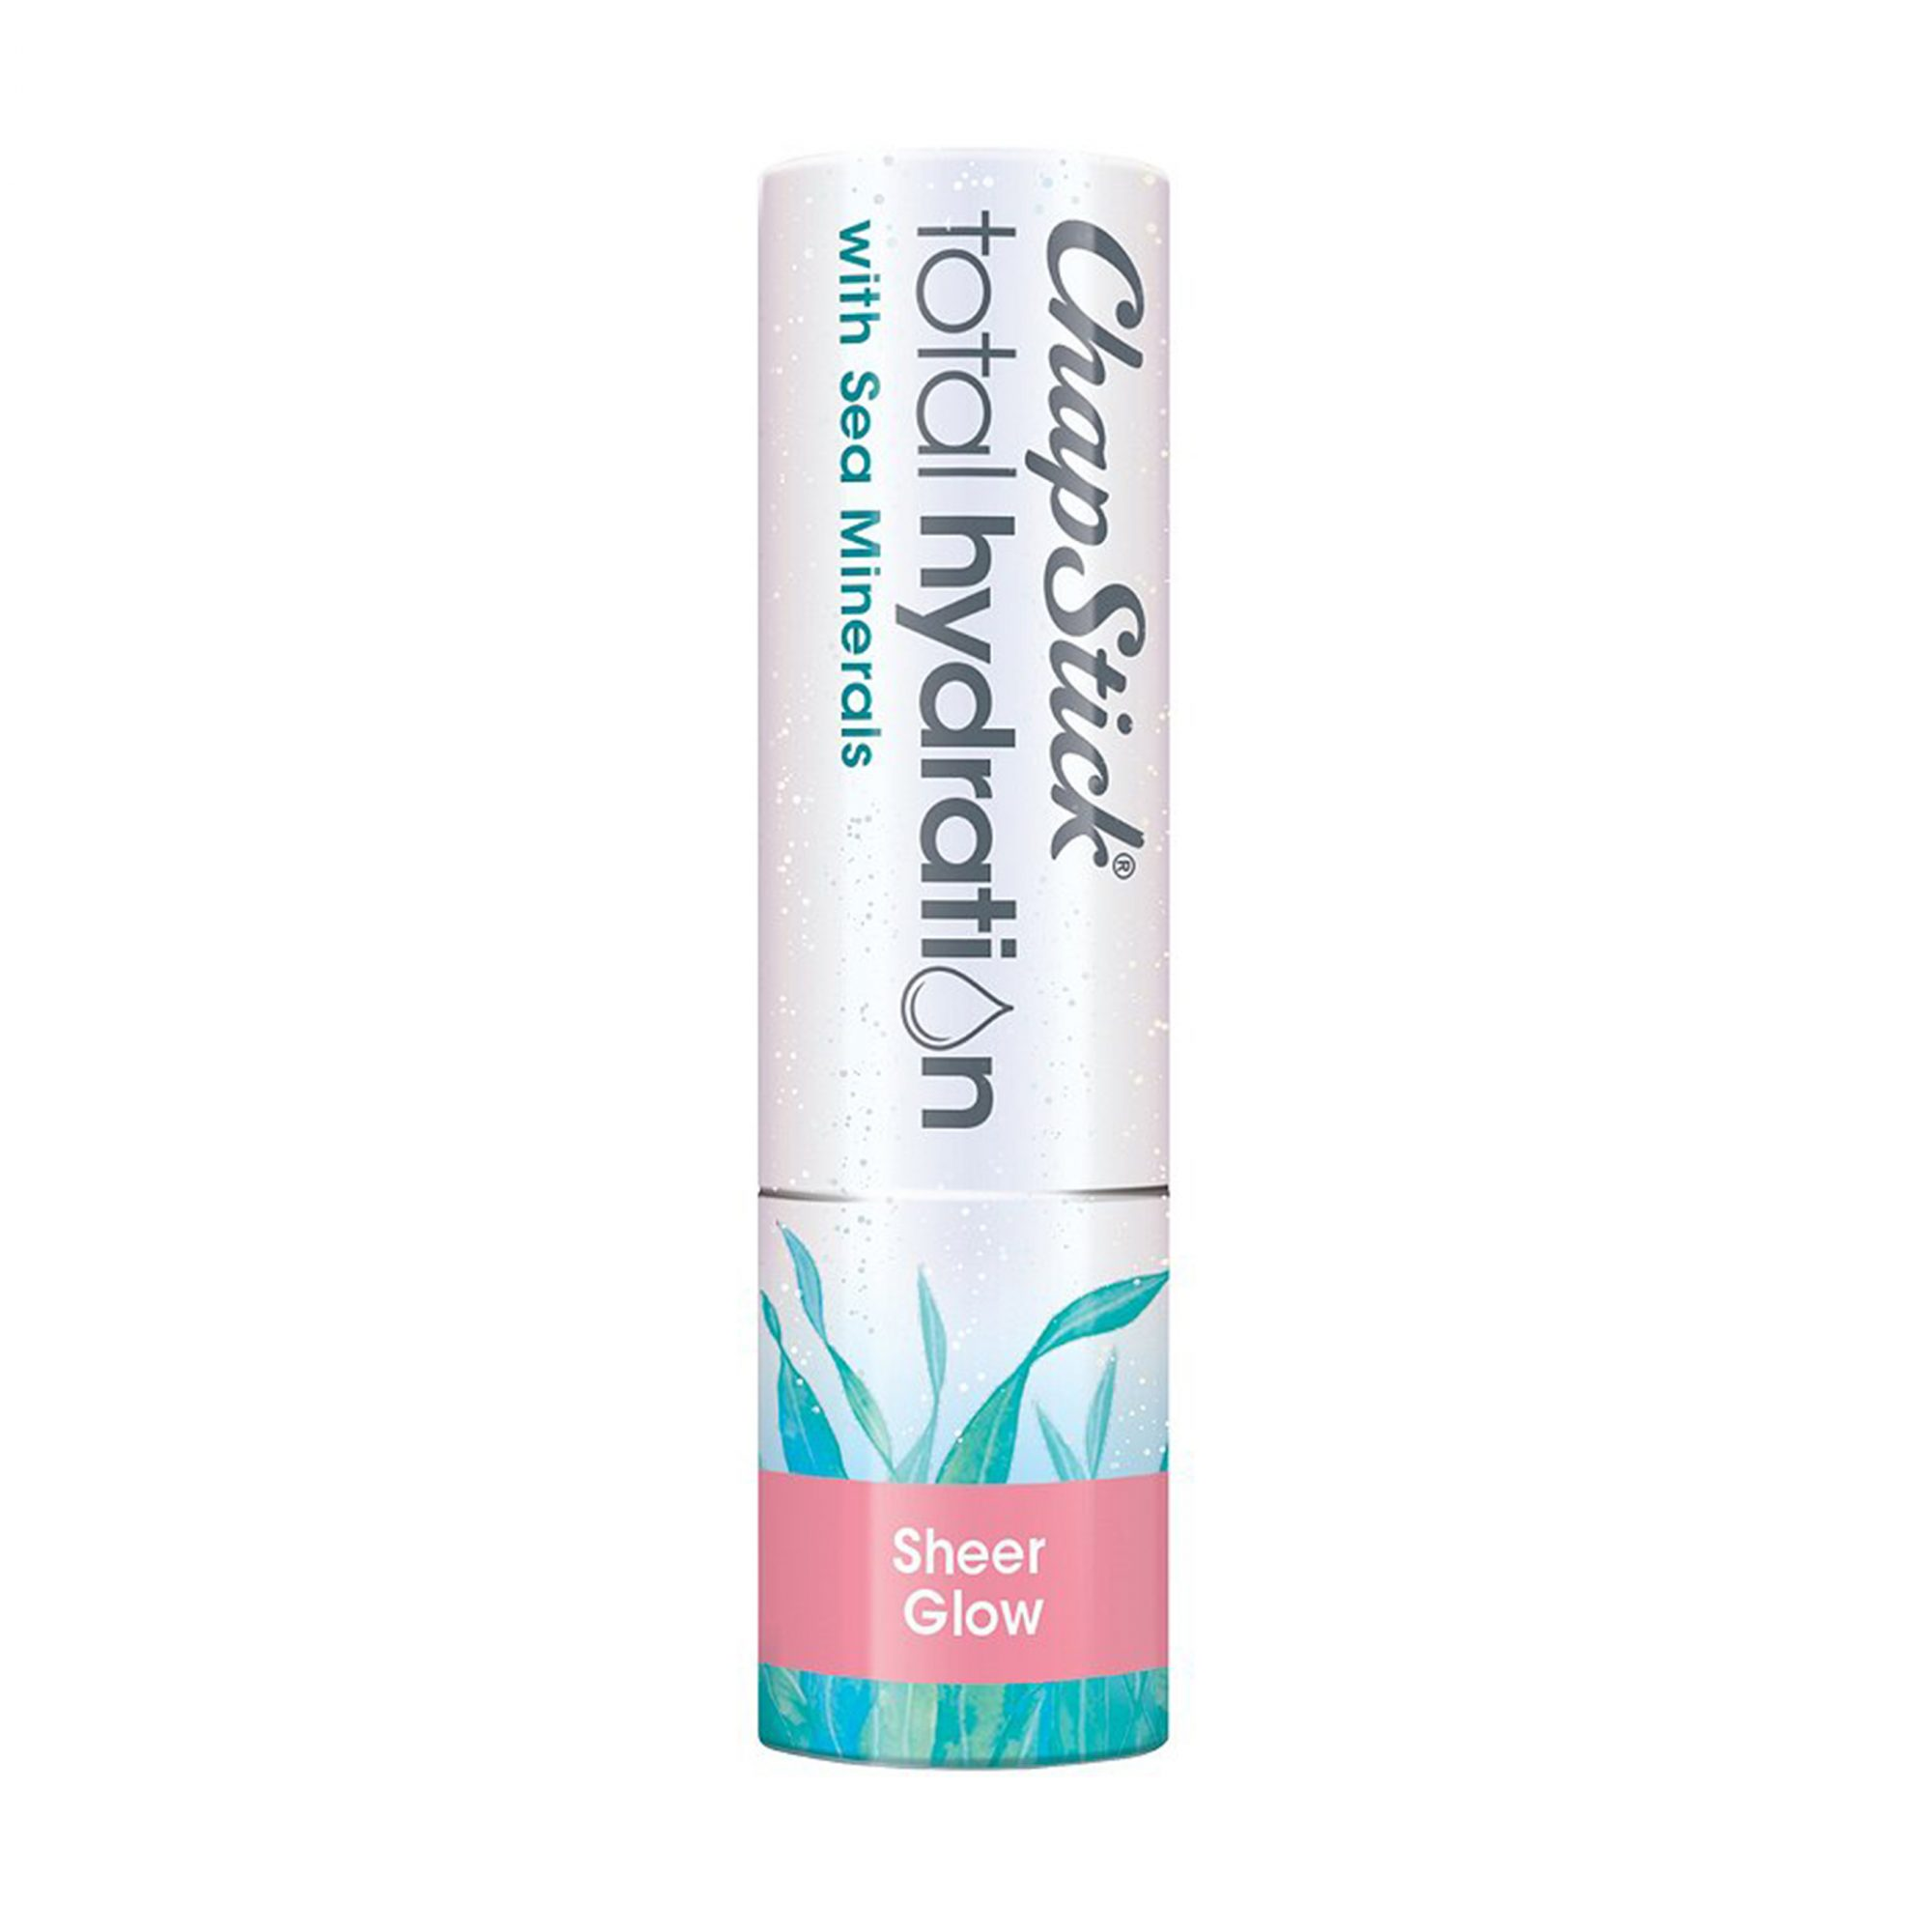 Beauty-Awards-Lips-ChapStick-Total-Hydration-With-Sea-Minerals-Sheer-Glow-Tinted Lip-Balm